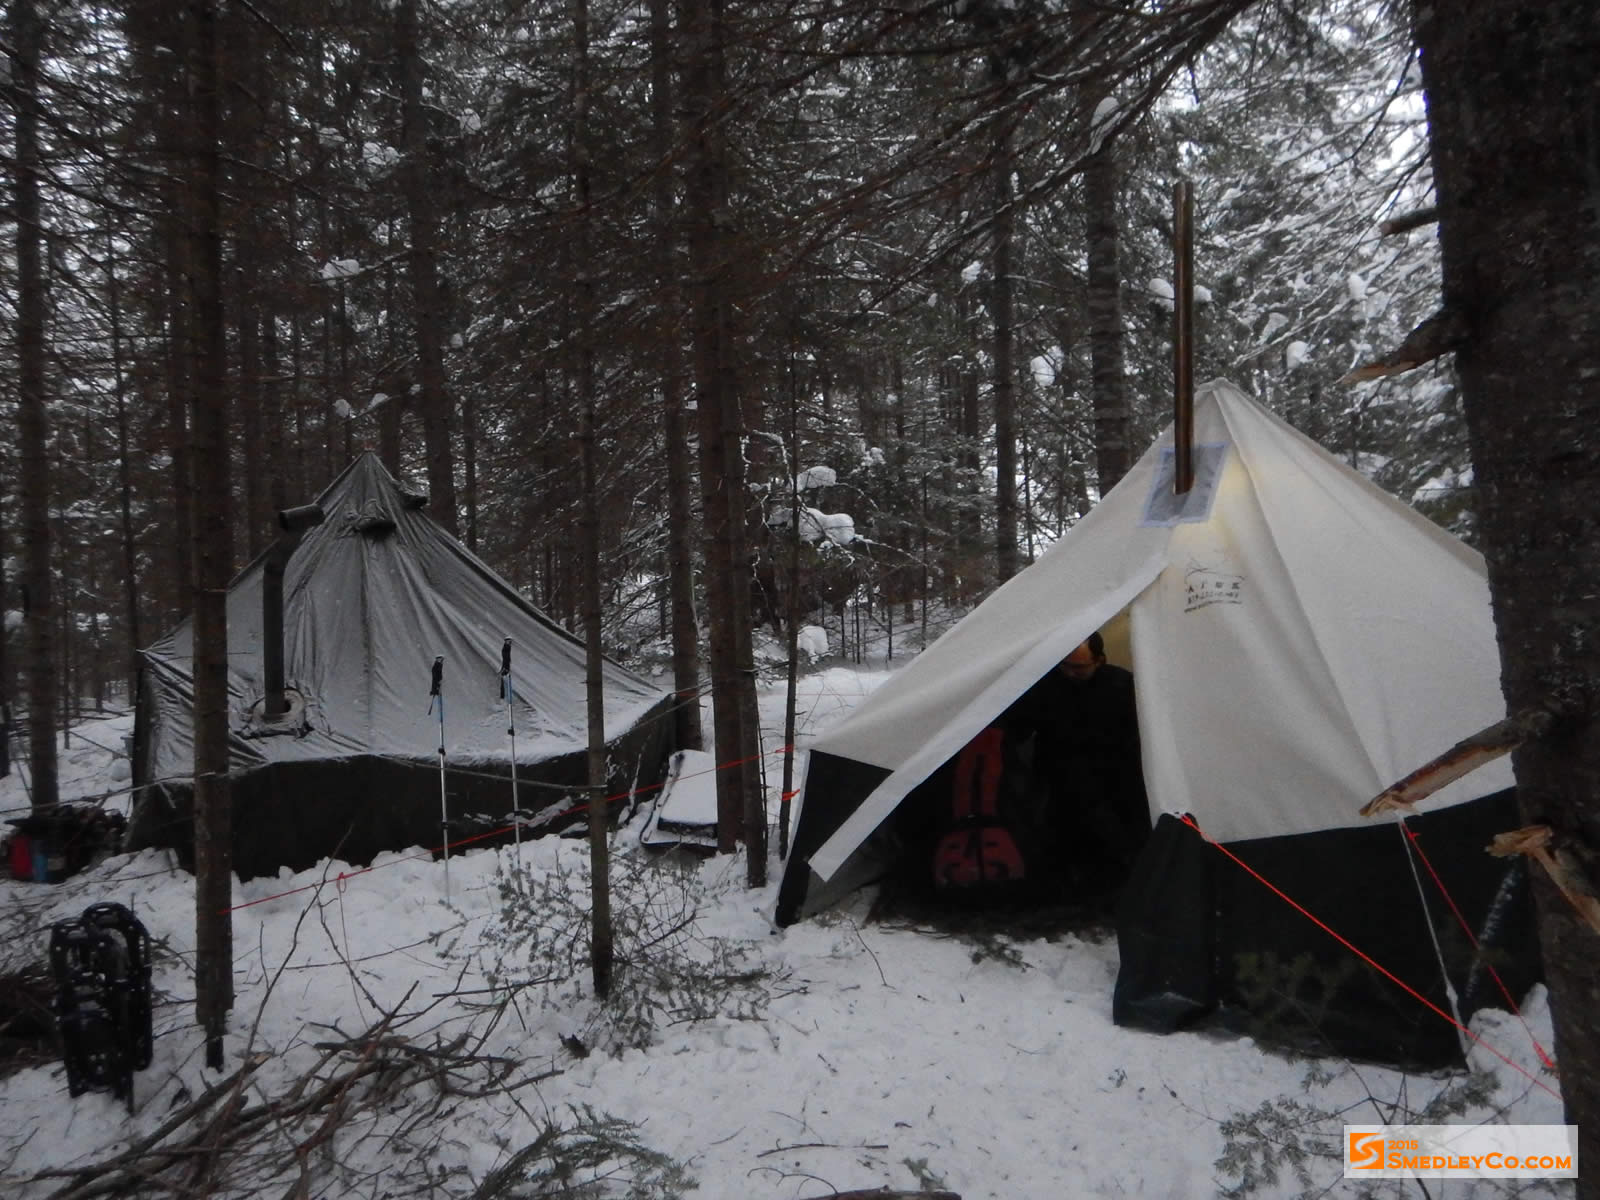 Winter Camping Tents : Trip log winter camping smedleyco